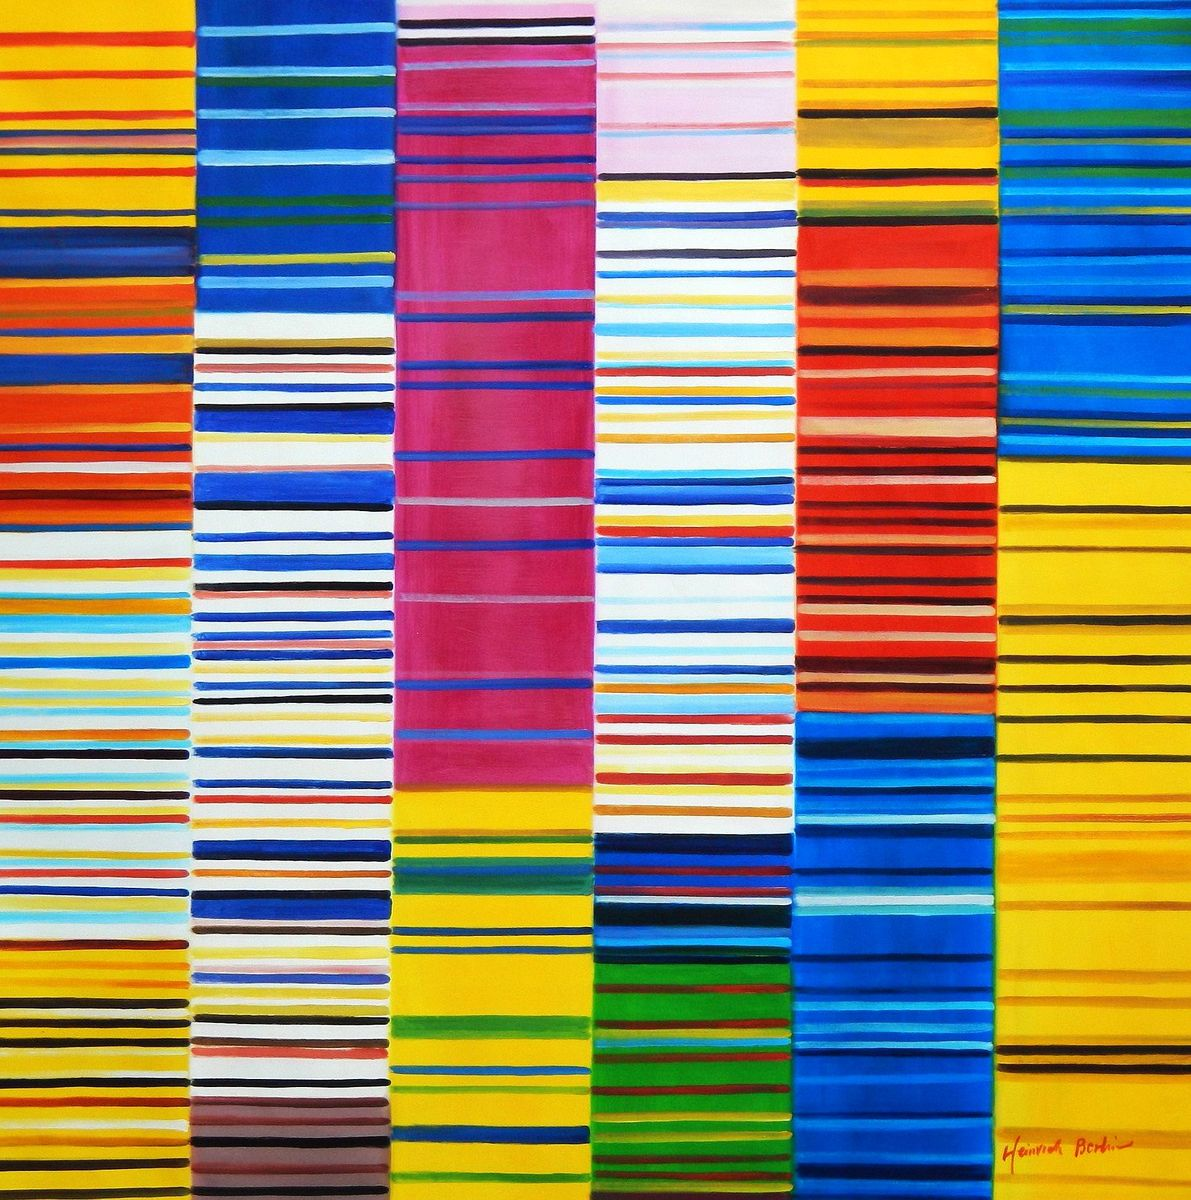 Modern Art - Lorenz stripes homage of Paul Smith m93149 120x120cm Ölgemälde